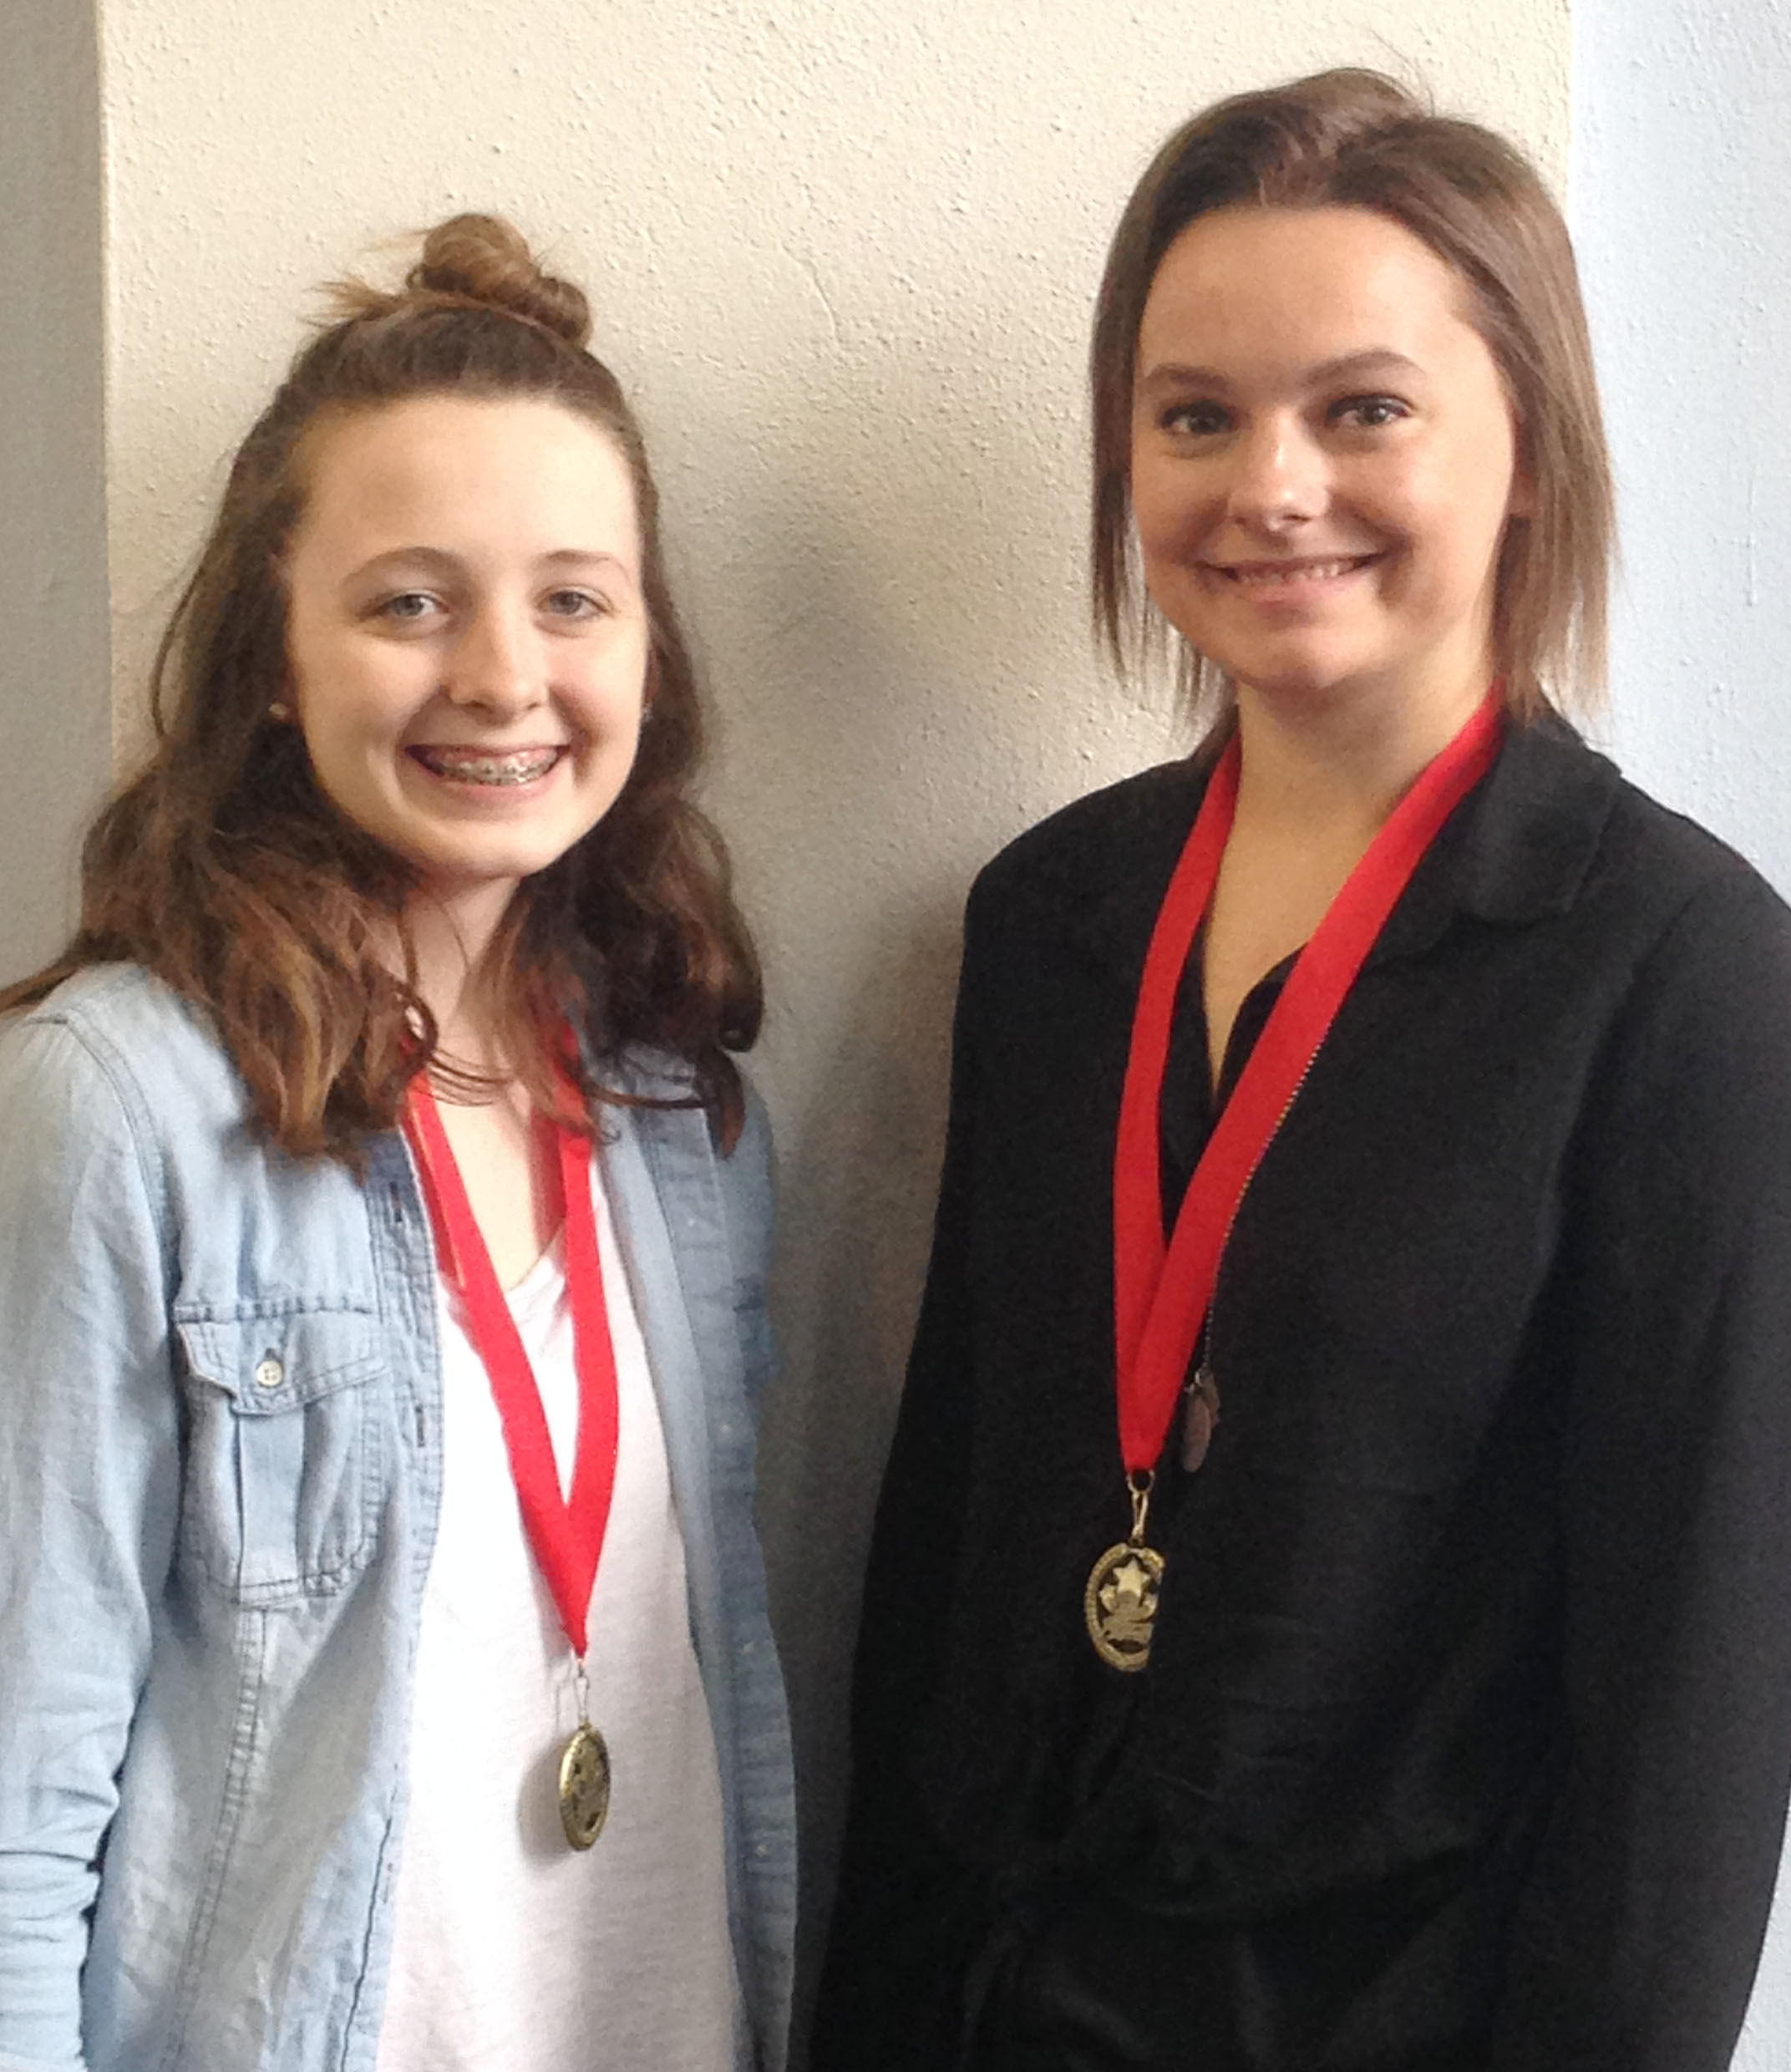 CHS freshman Caleigh Bright, at left, and senior Kyrsten Hill will compete in STAR Events at next week's Kentucky FCCLA state convention in Louisville. They will deliver presentations about nutrition.